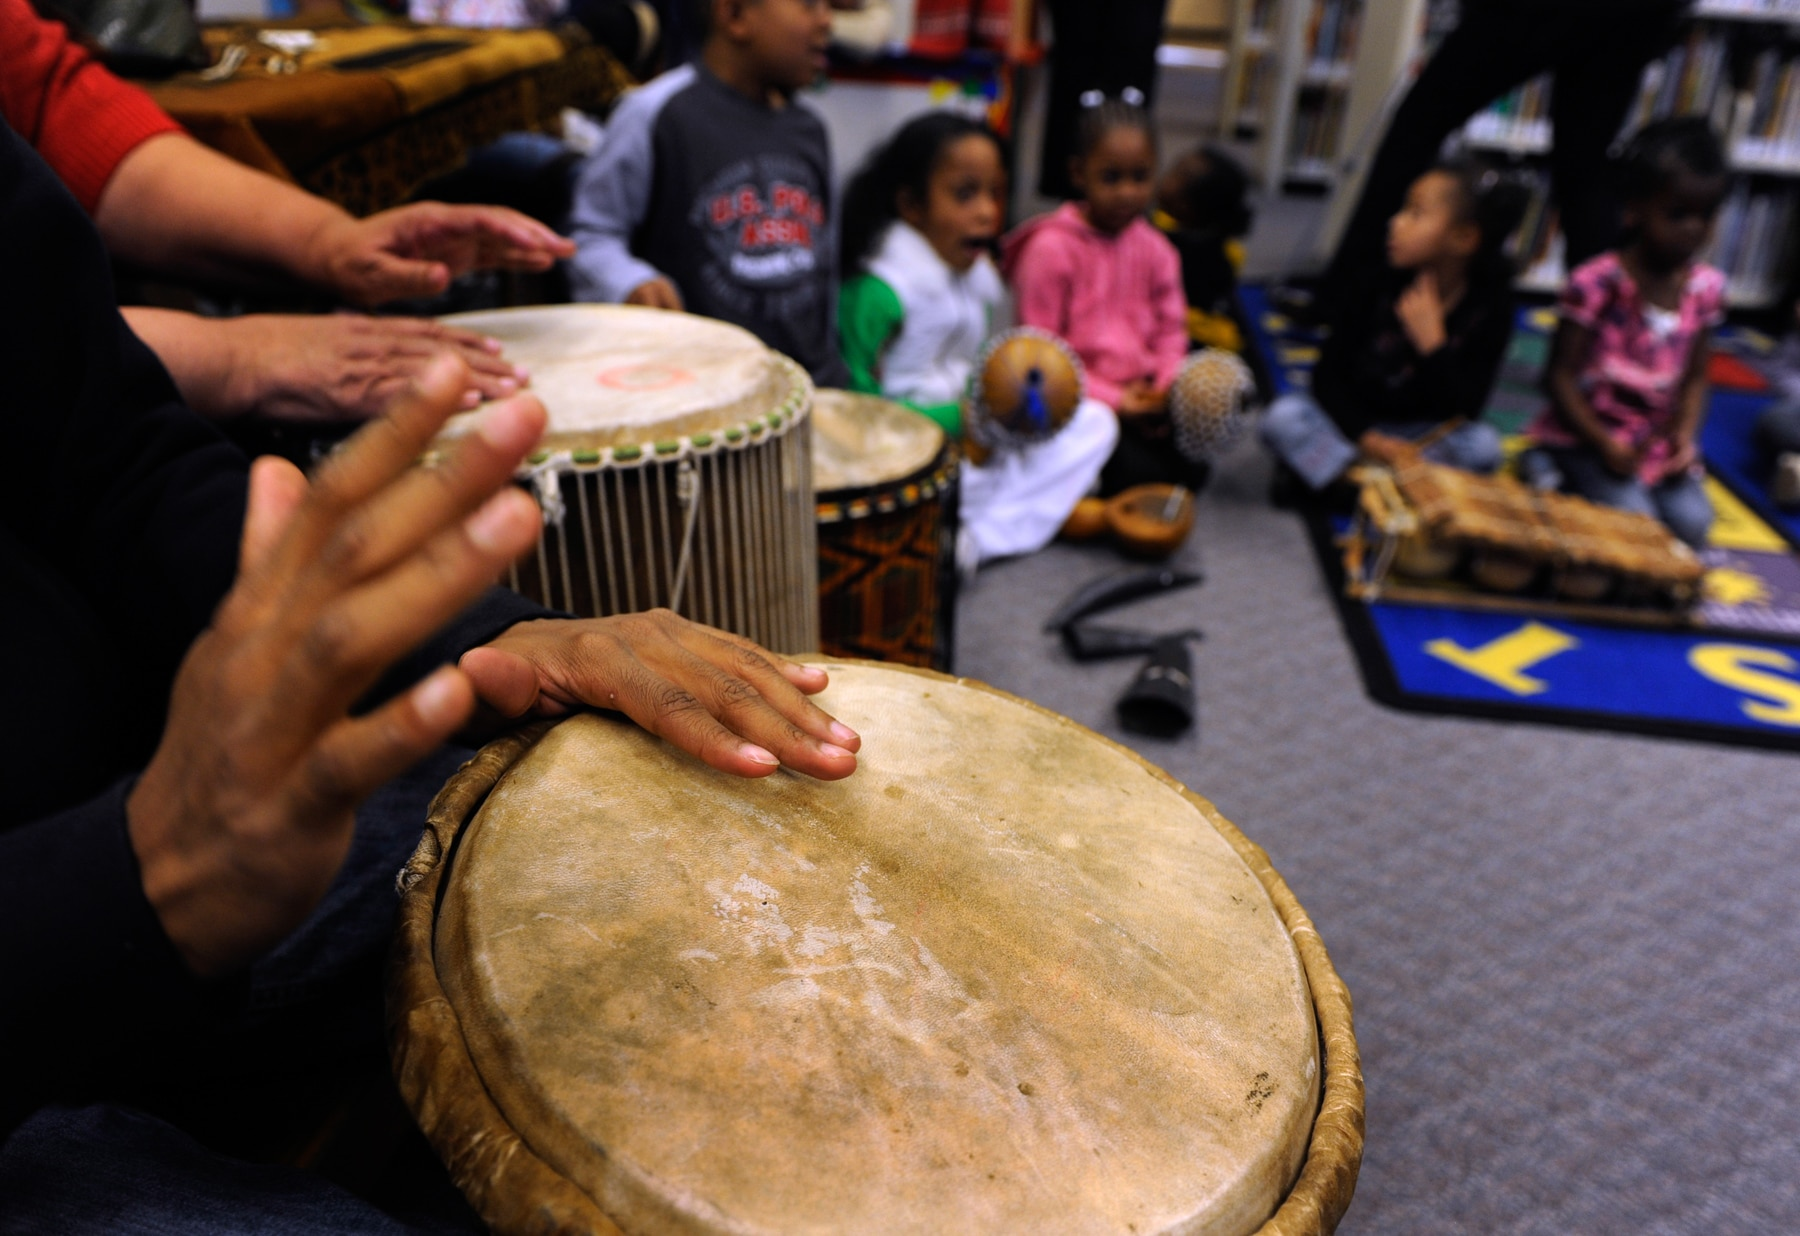 Hands playing drums with children listening in the background (© Kathryn Scott Osler/The Denver Post via Getty Images)